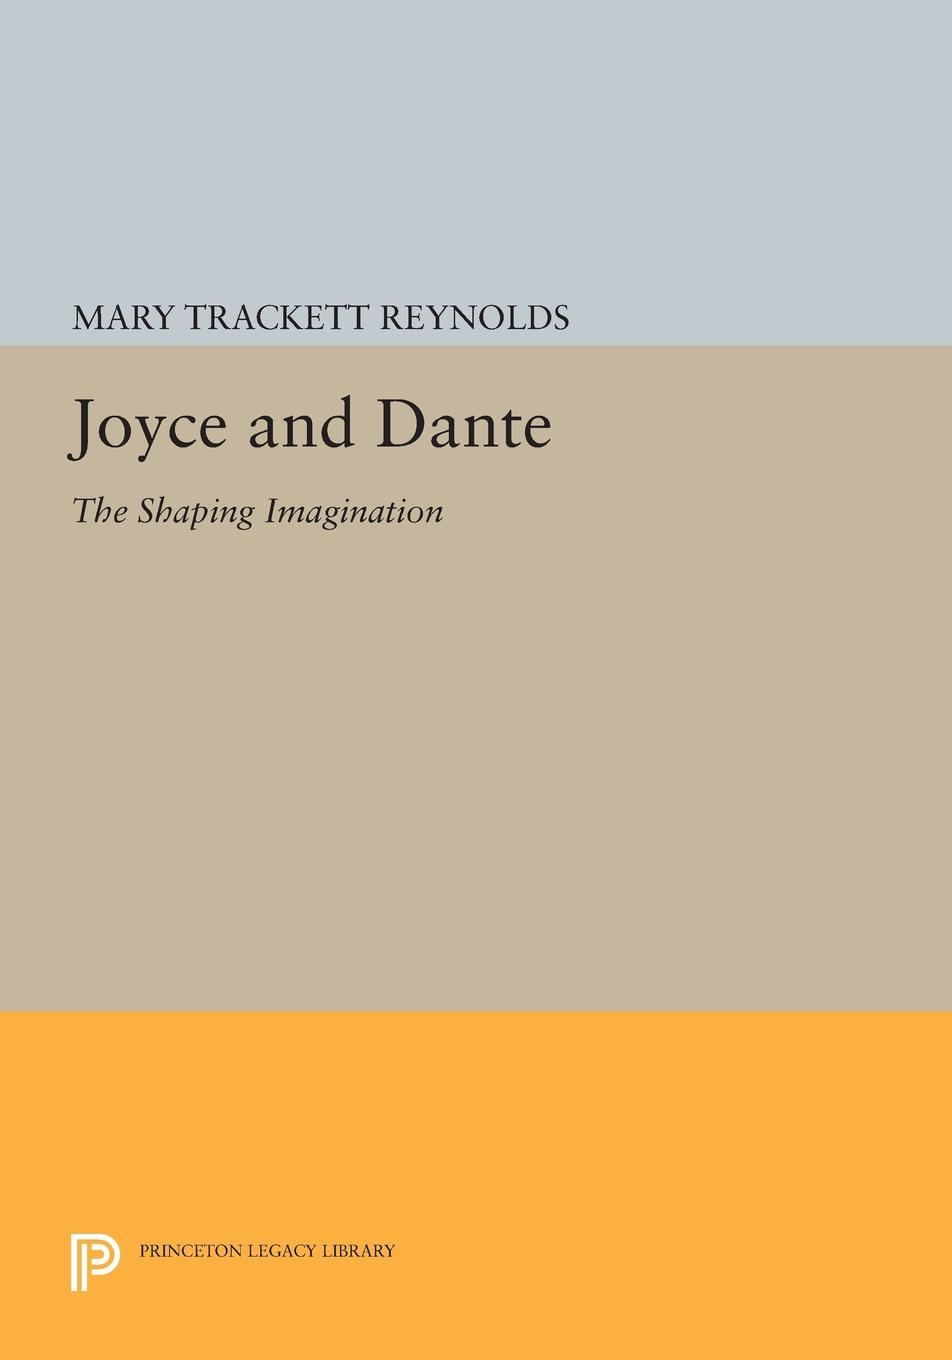 Mary Trackett Reynolds Joyce and Dante. The Shaping Imagination ajurmotts g zannotti william n joyce fishing derby poems in princeton tufts